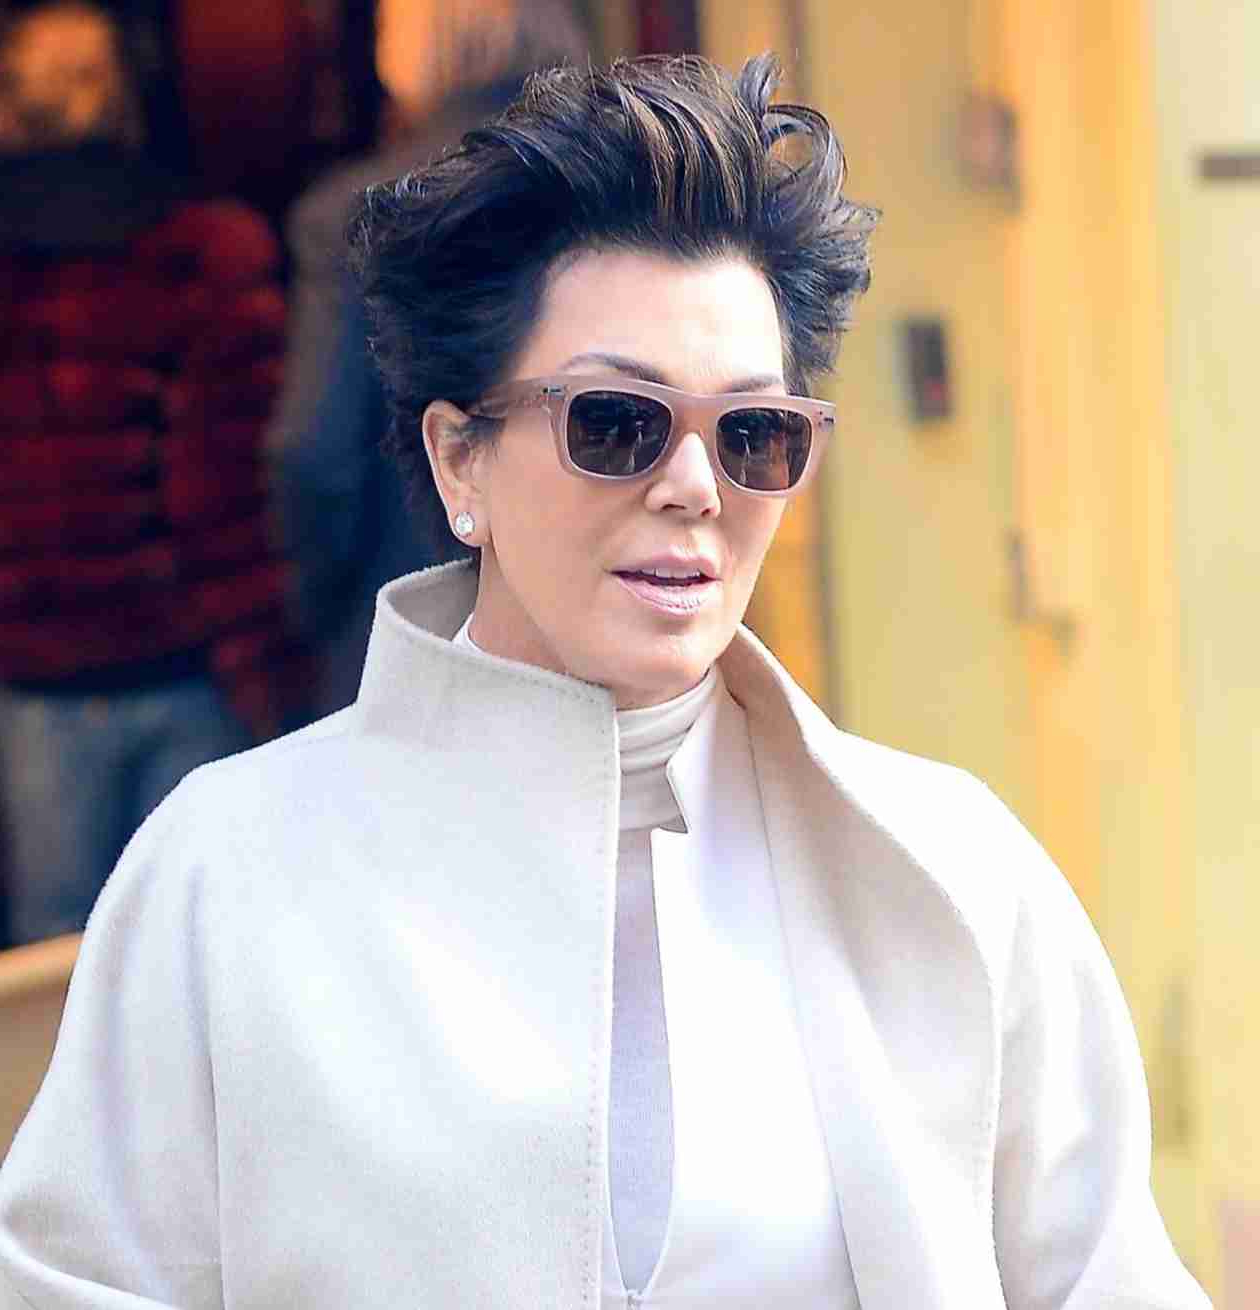 Kris Jenner Shows Off Crazy New Hairstyle While Wearing The Same Regarding Short Haircuts Kris Jenner (View 20 of 25)